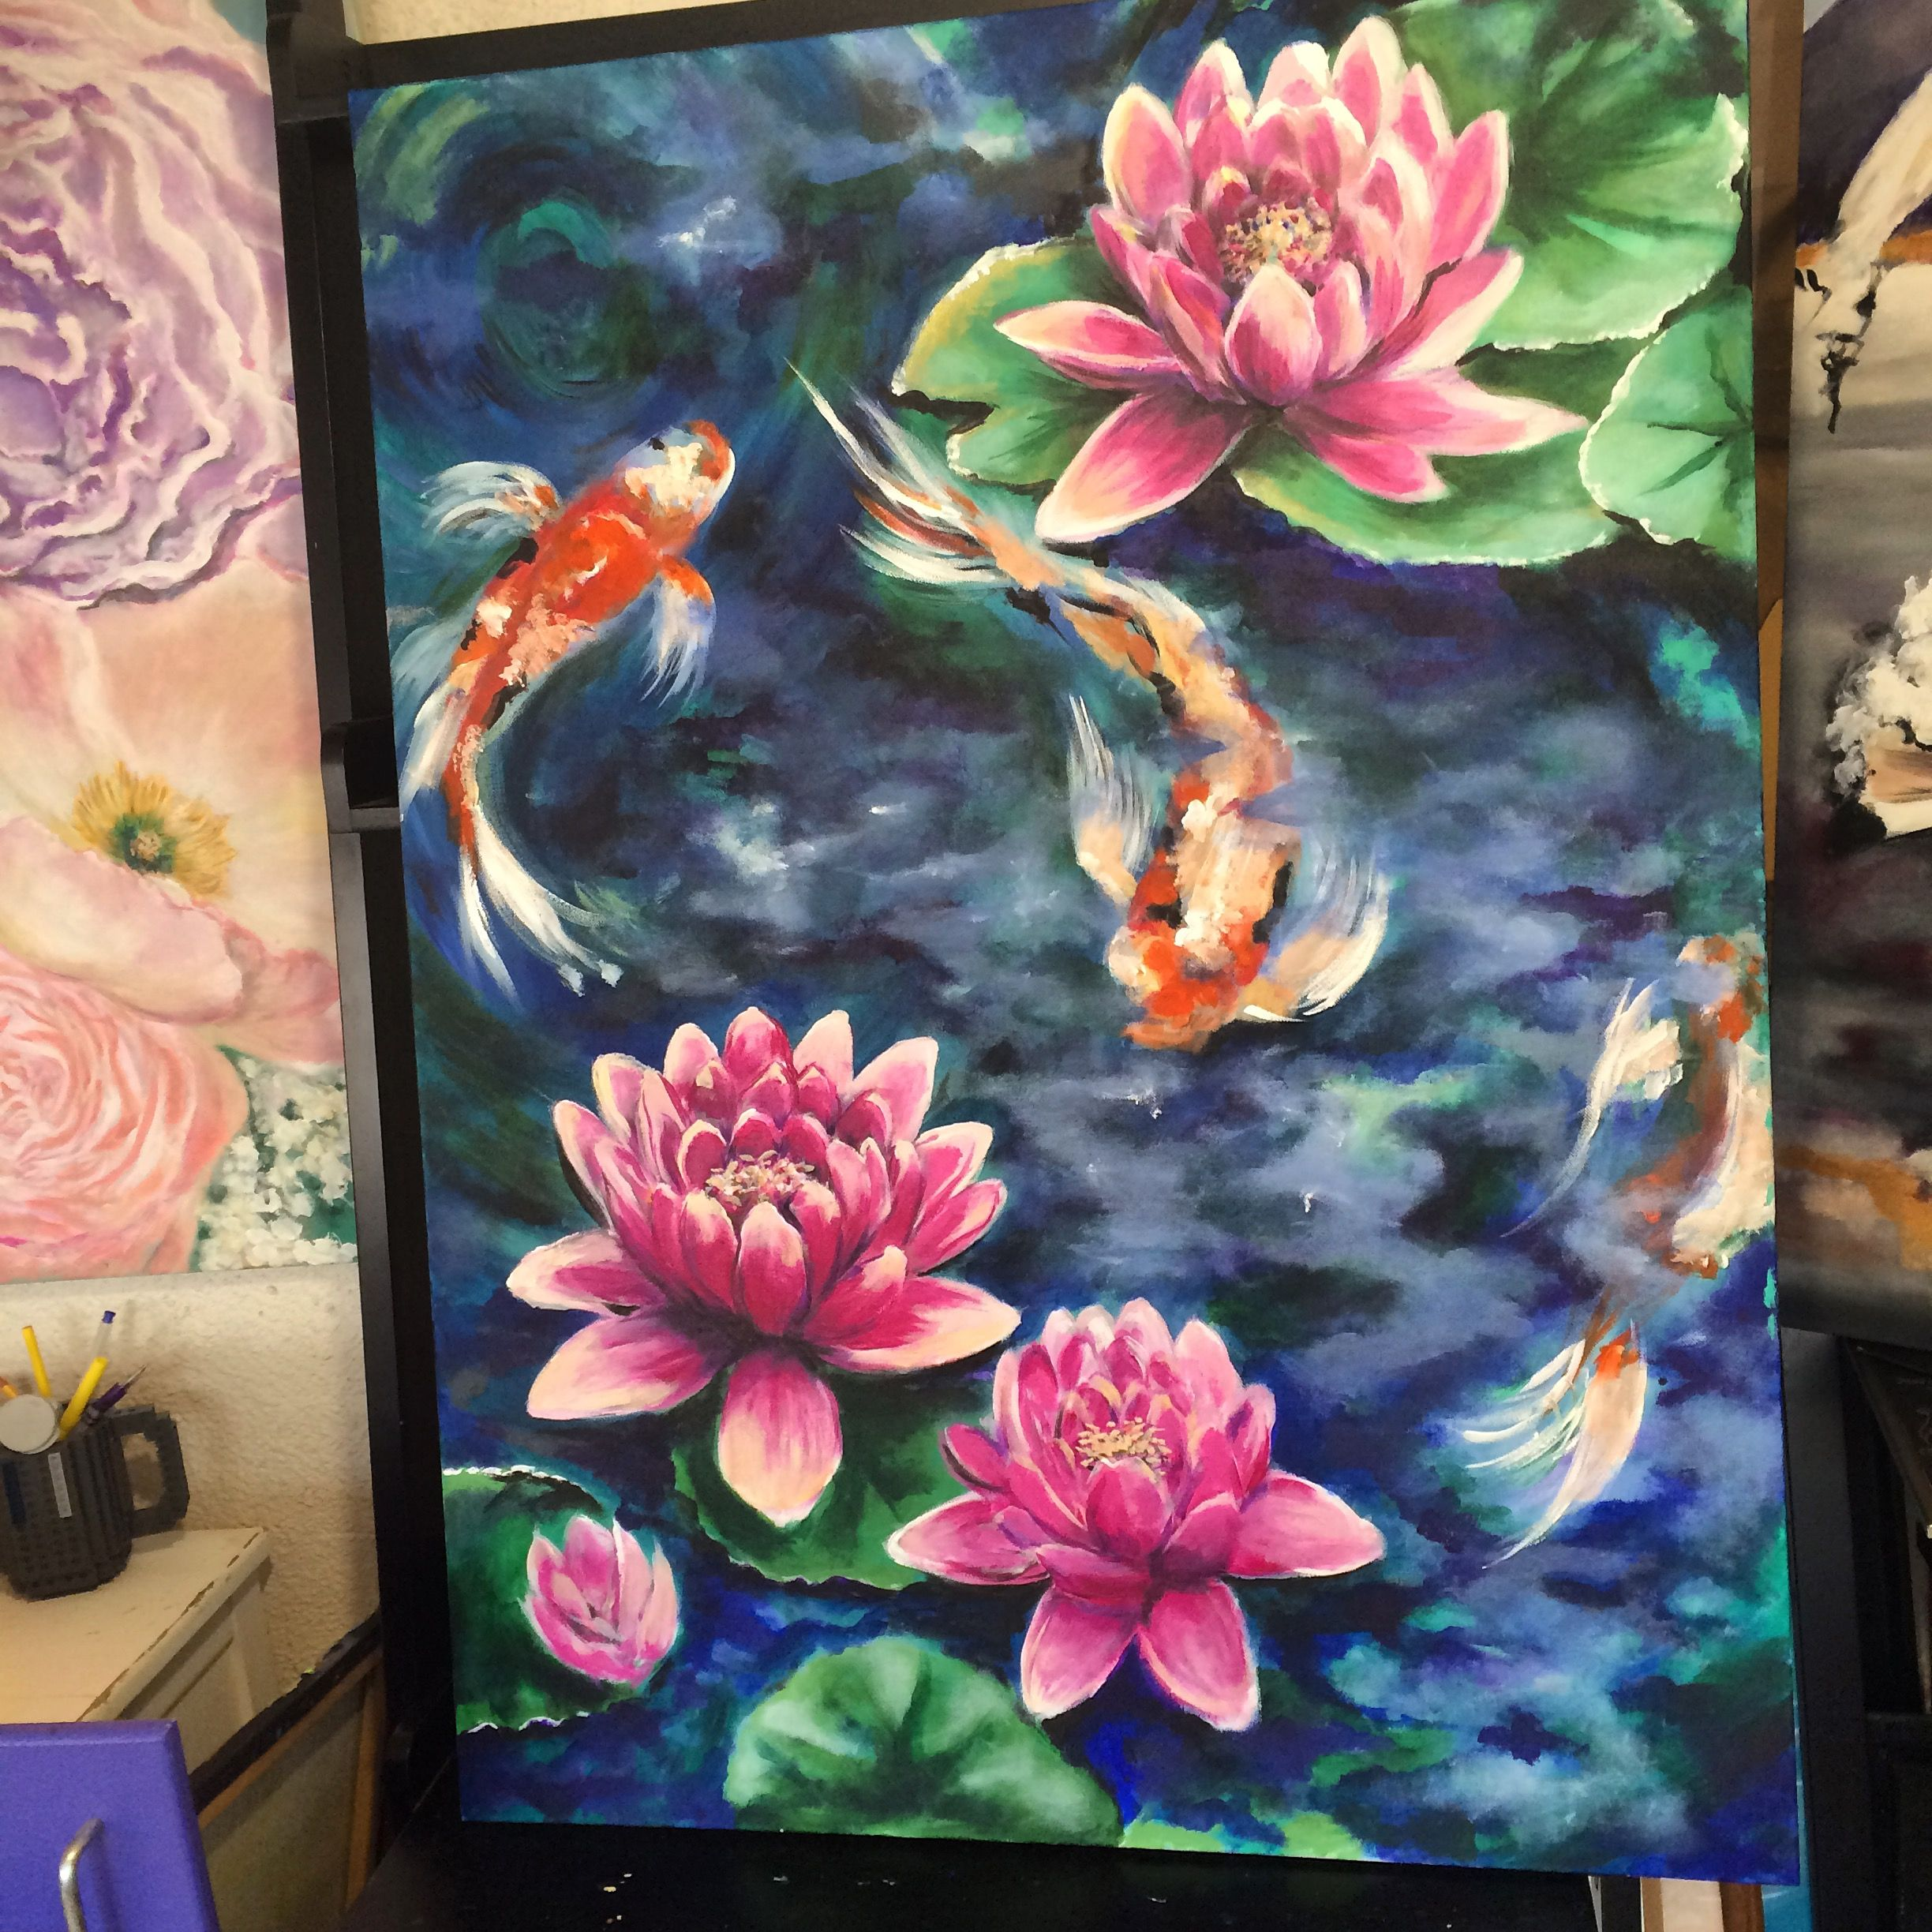 Koi fish pond with lotus flowers surrounding colorful for Koi fish art paintings